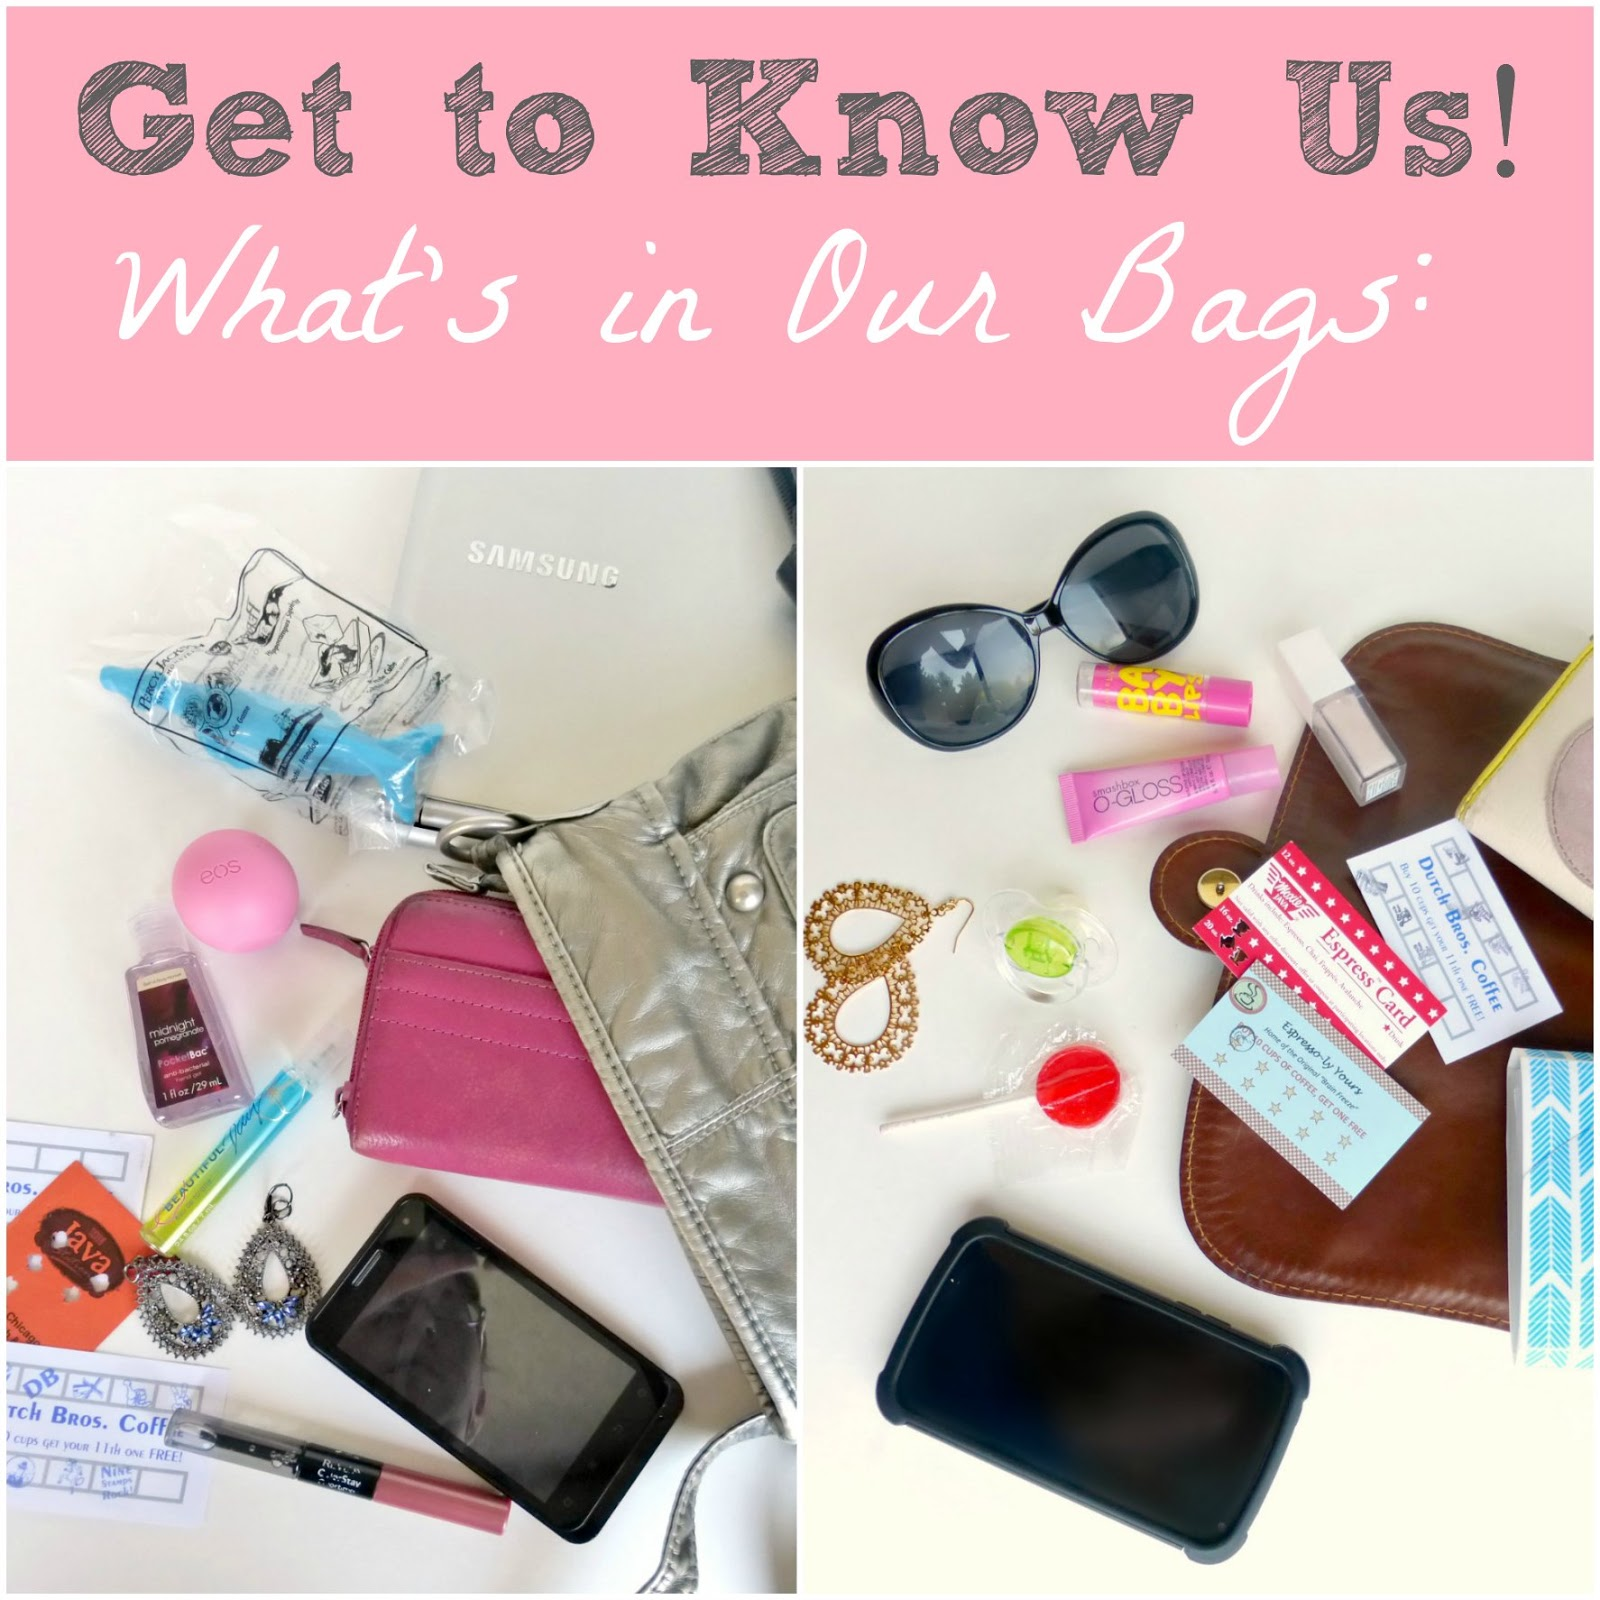 a look inside our everyday bags